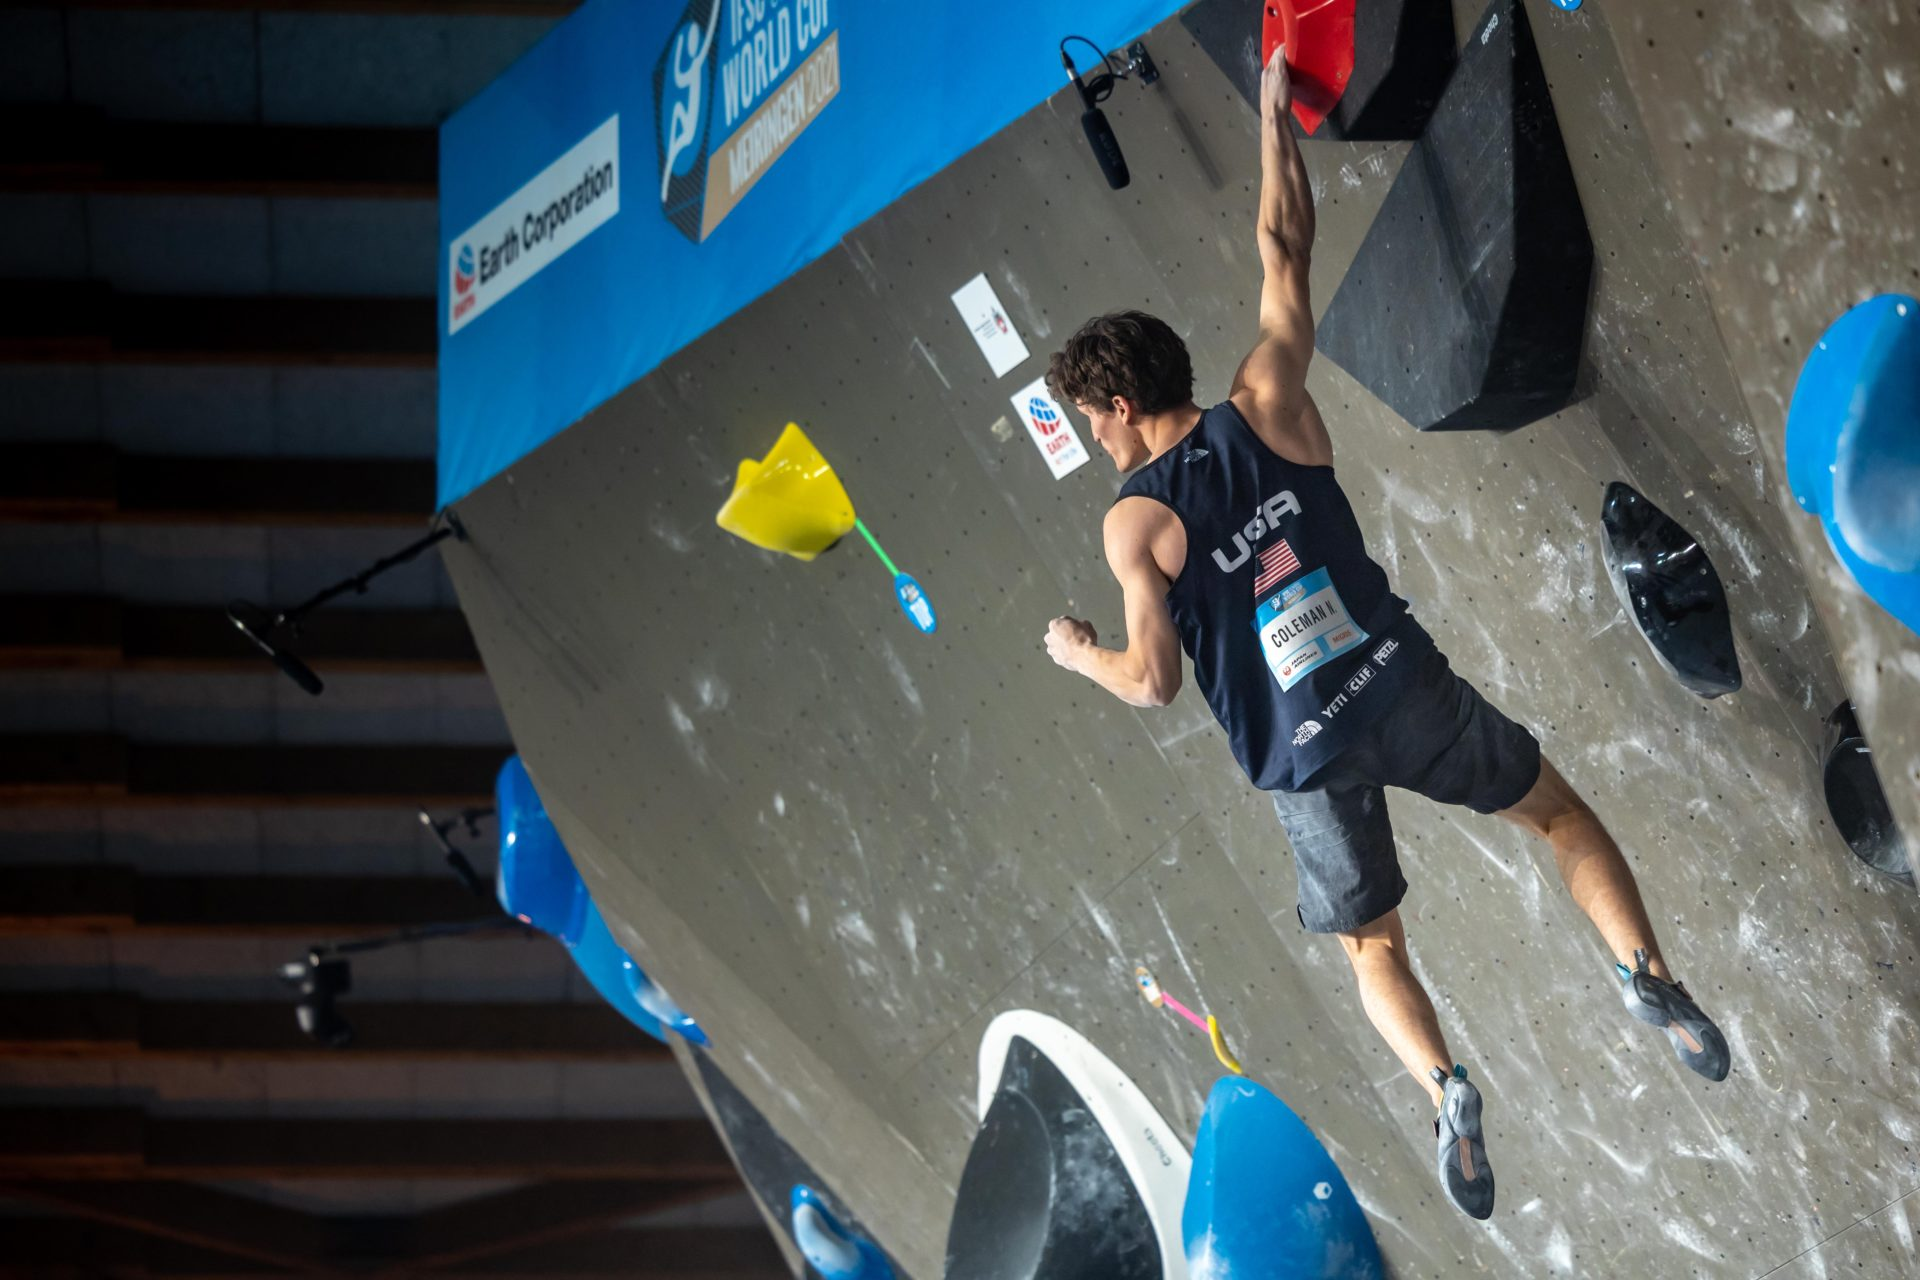 USA Climber Coleman hanging on wall with one arm